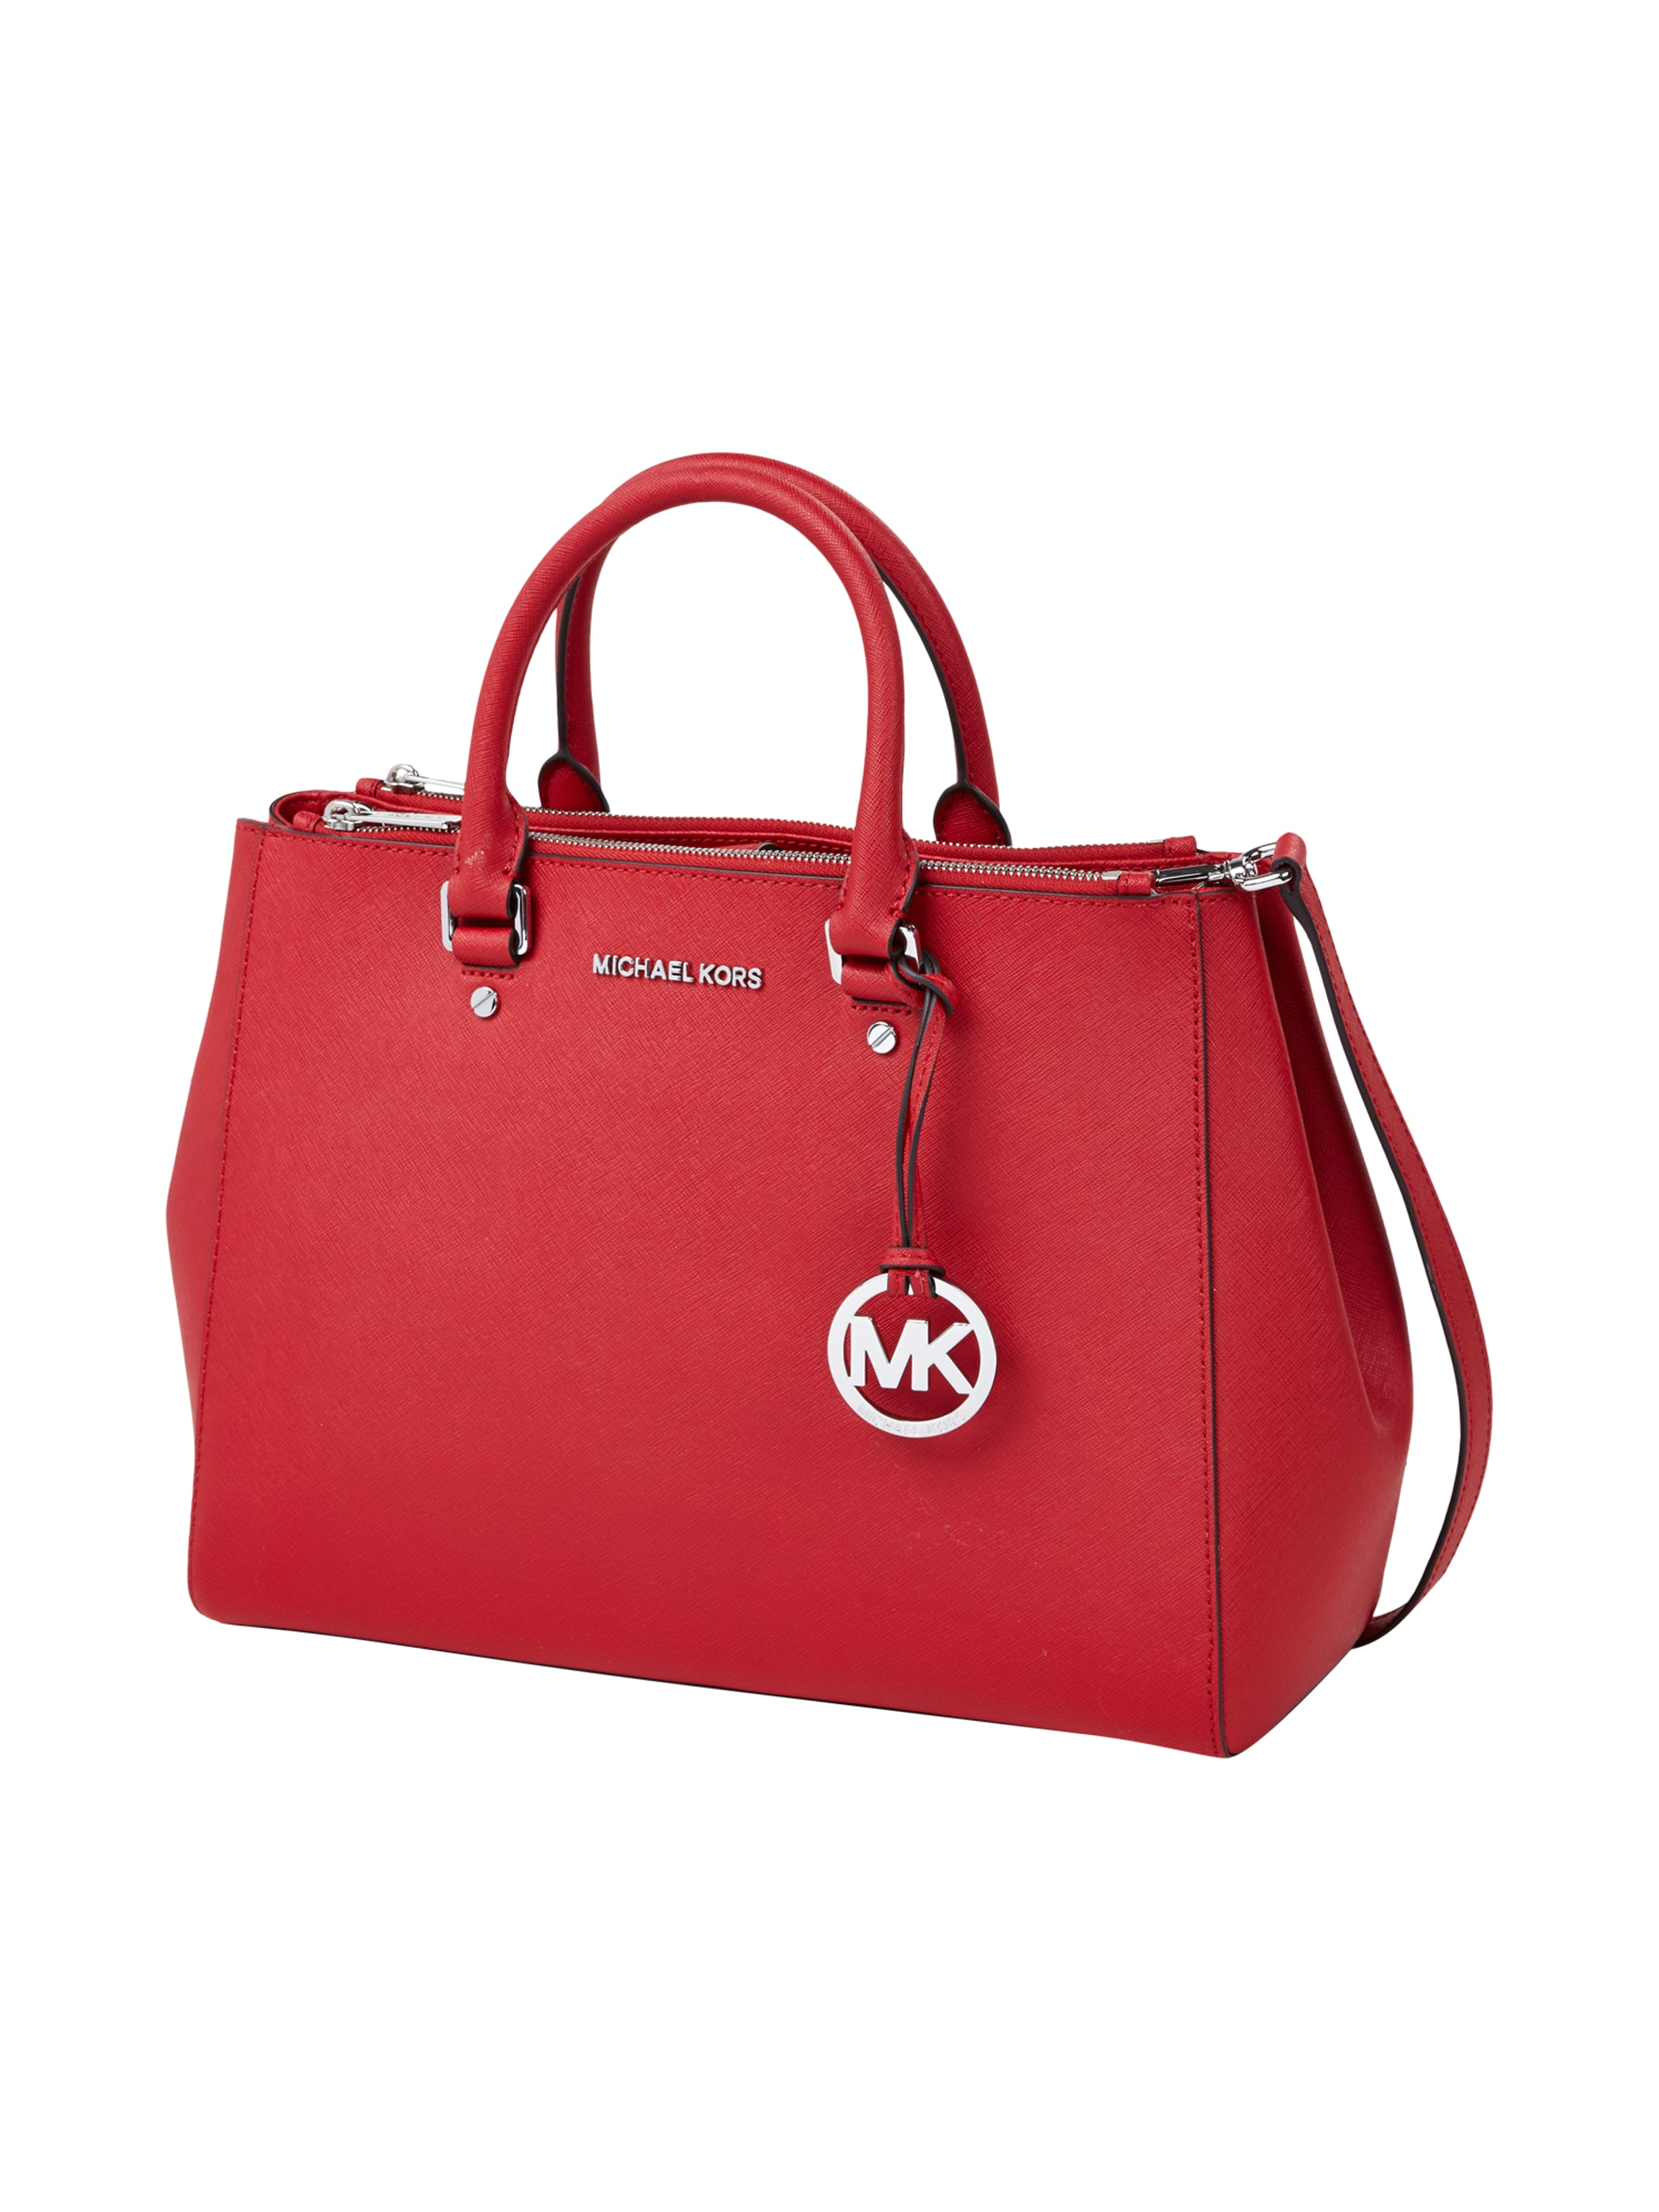 michael michael kors handtasche aus leder in rot online kaufen 9270279 p c online shop. Black Bedroom Furniture Sets. Home Design Ideas